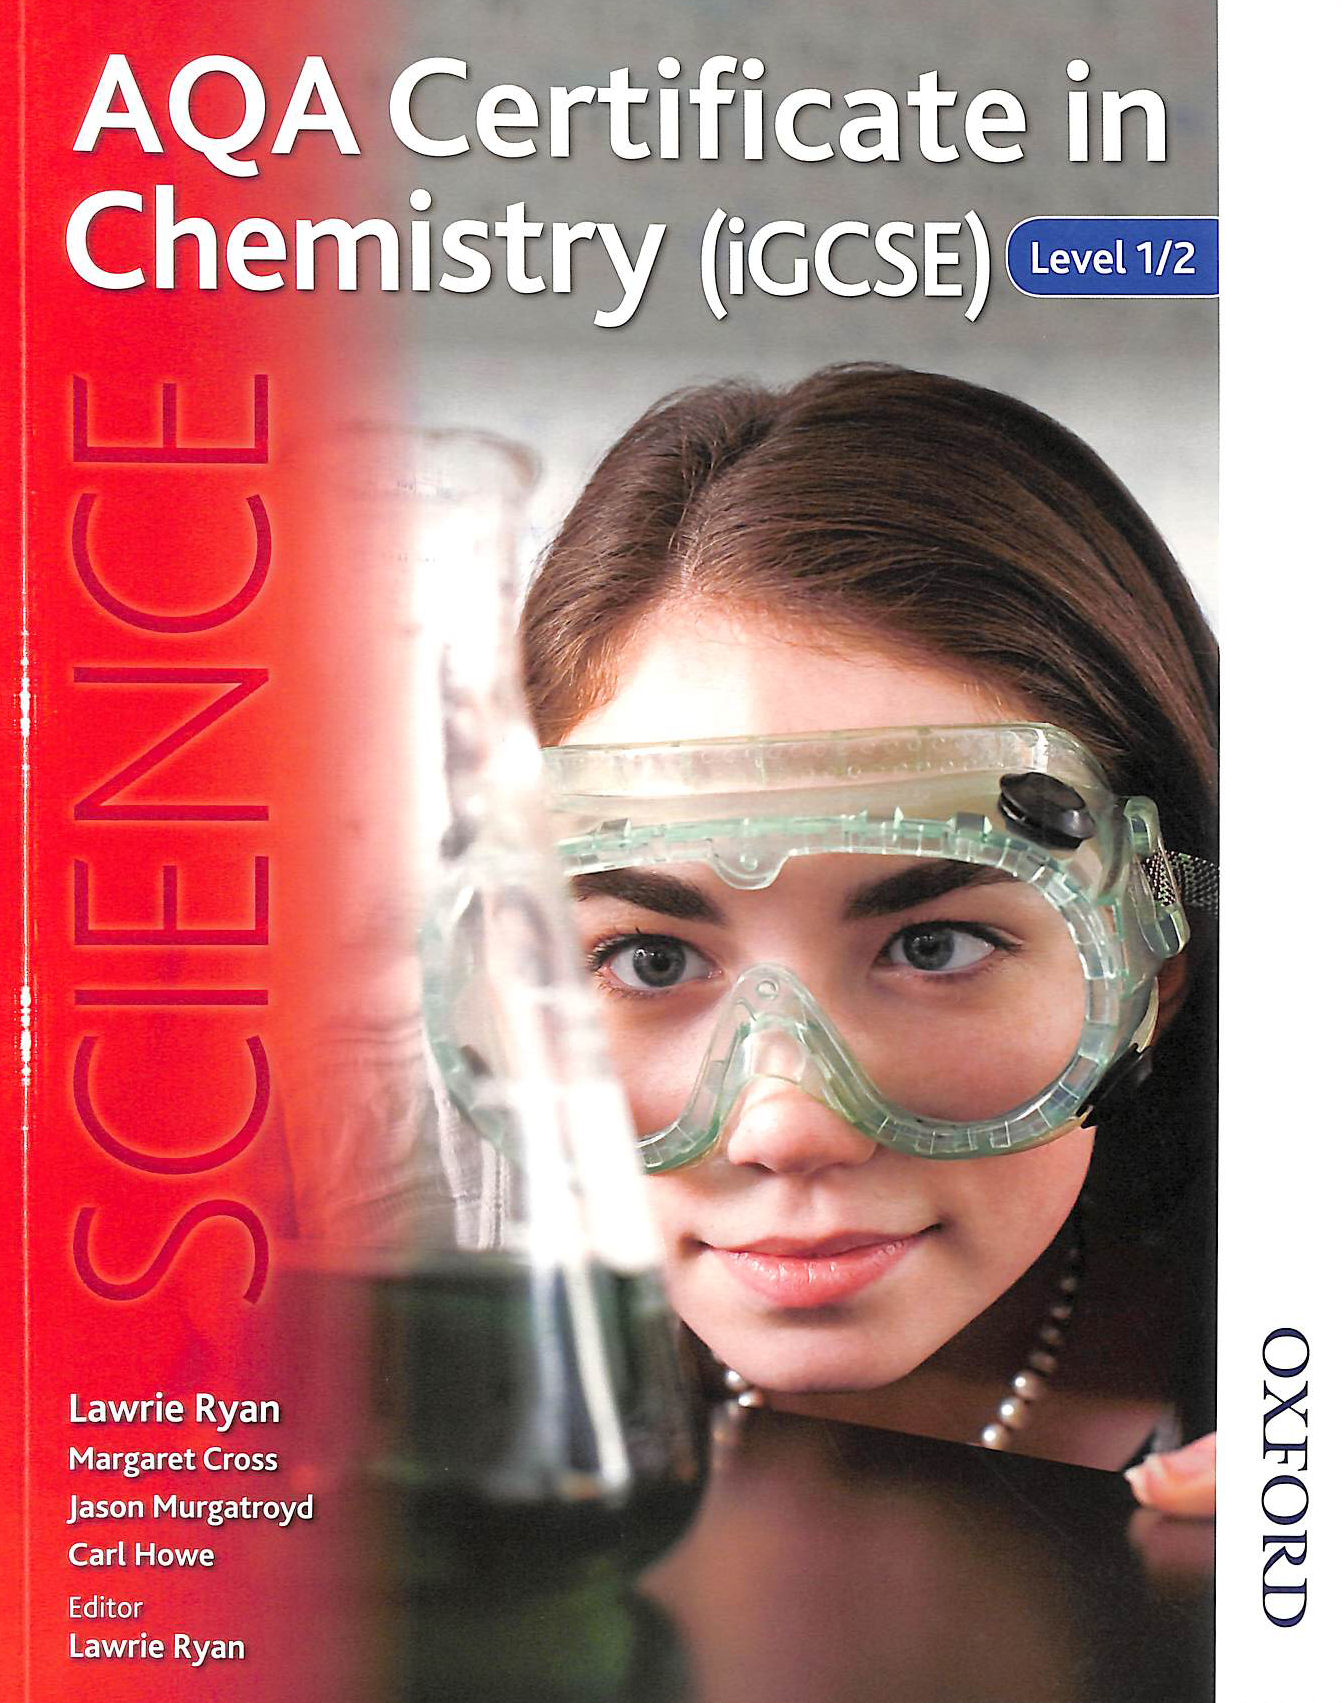 Image for AQA Certificate in Chemistry (iGCSE) Level 1/2